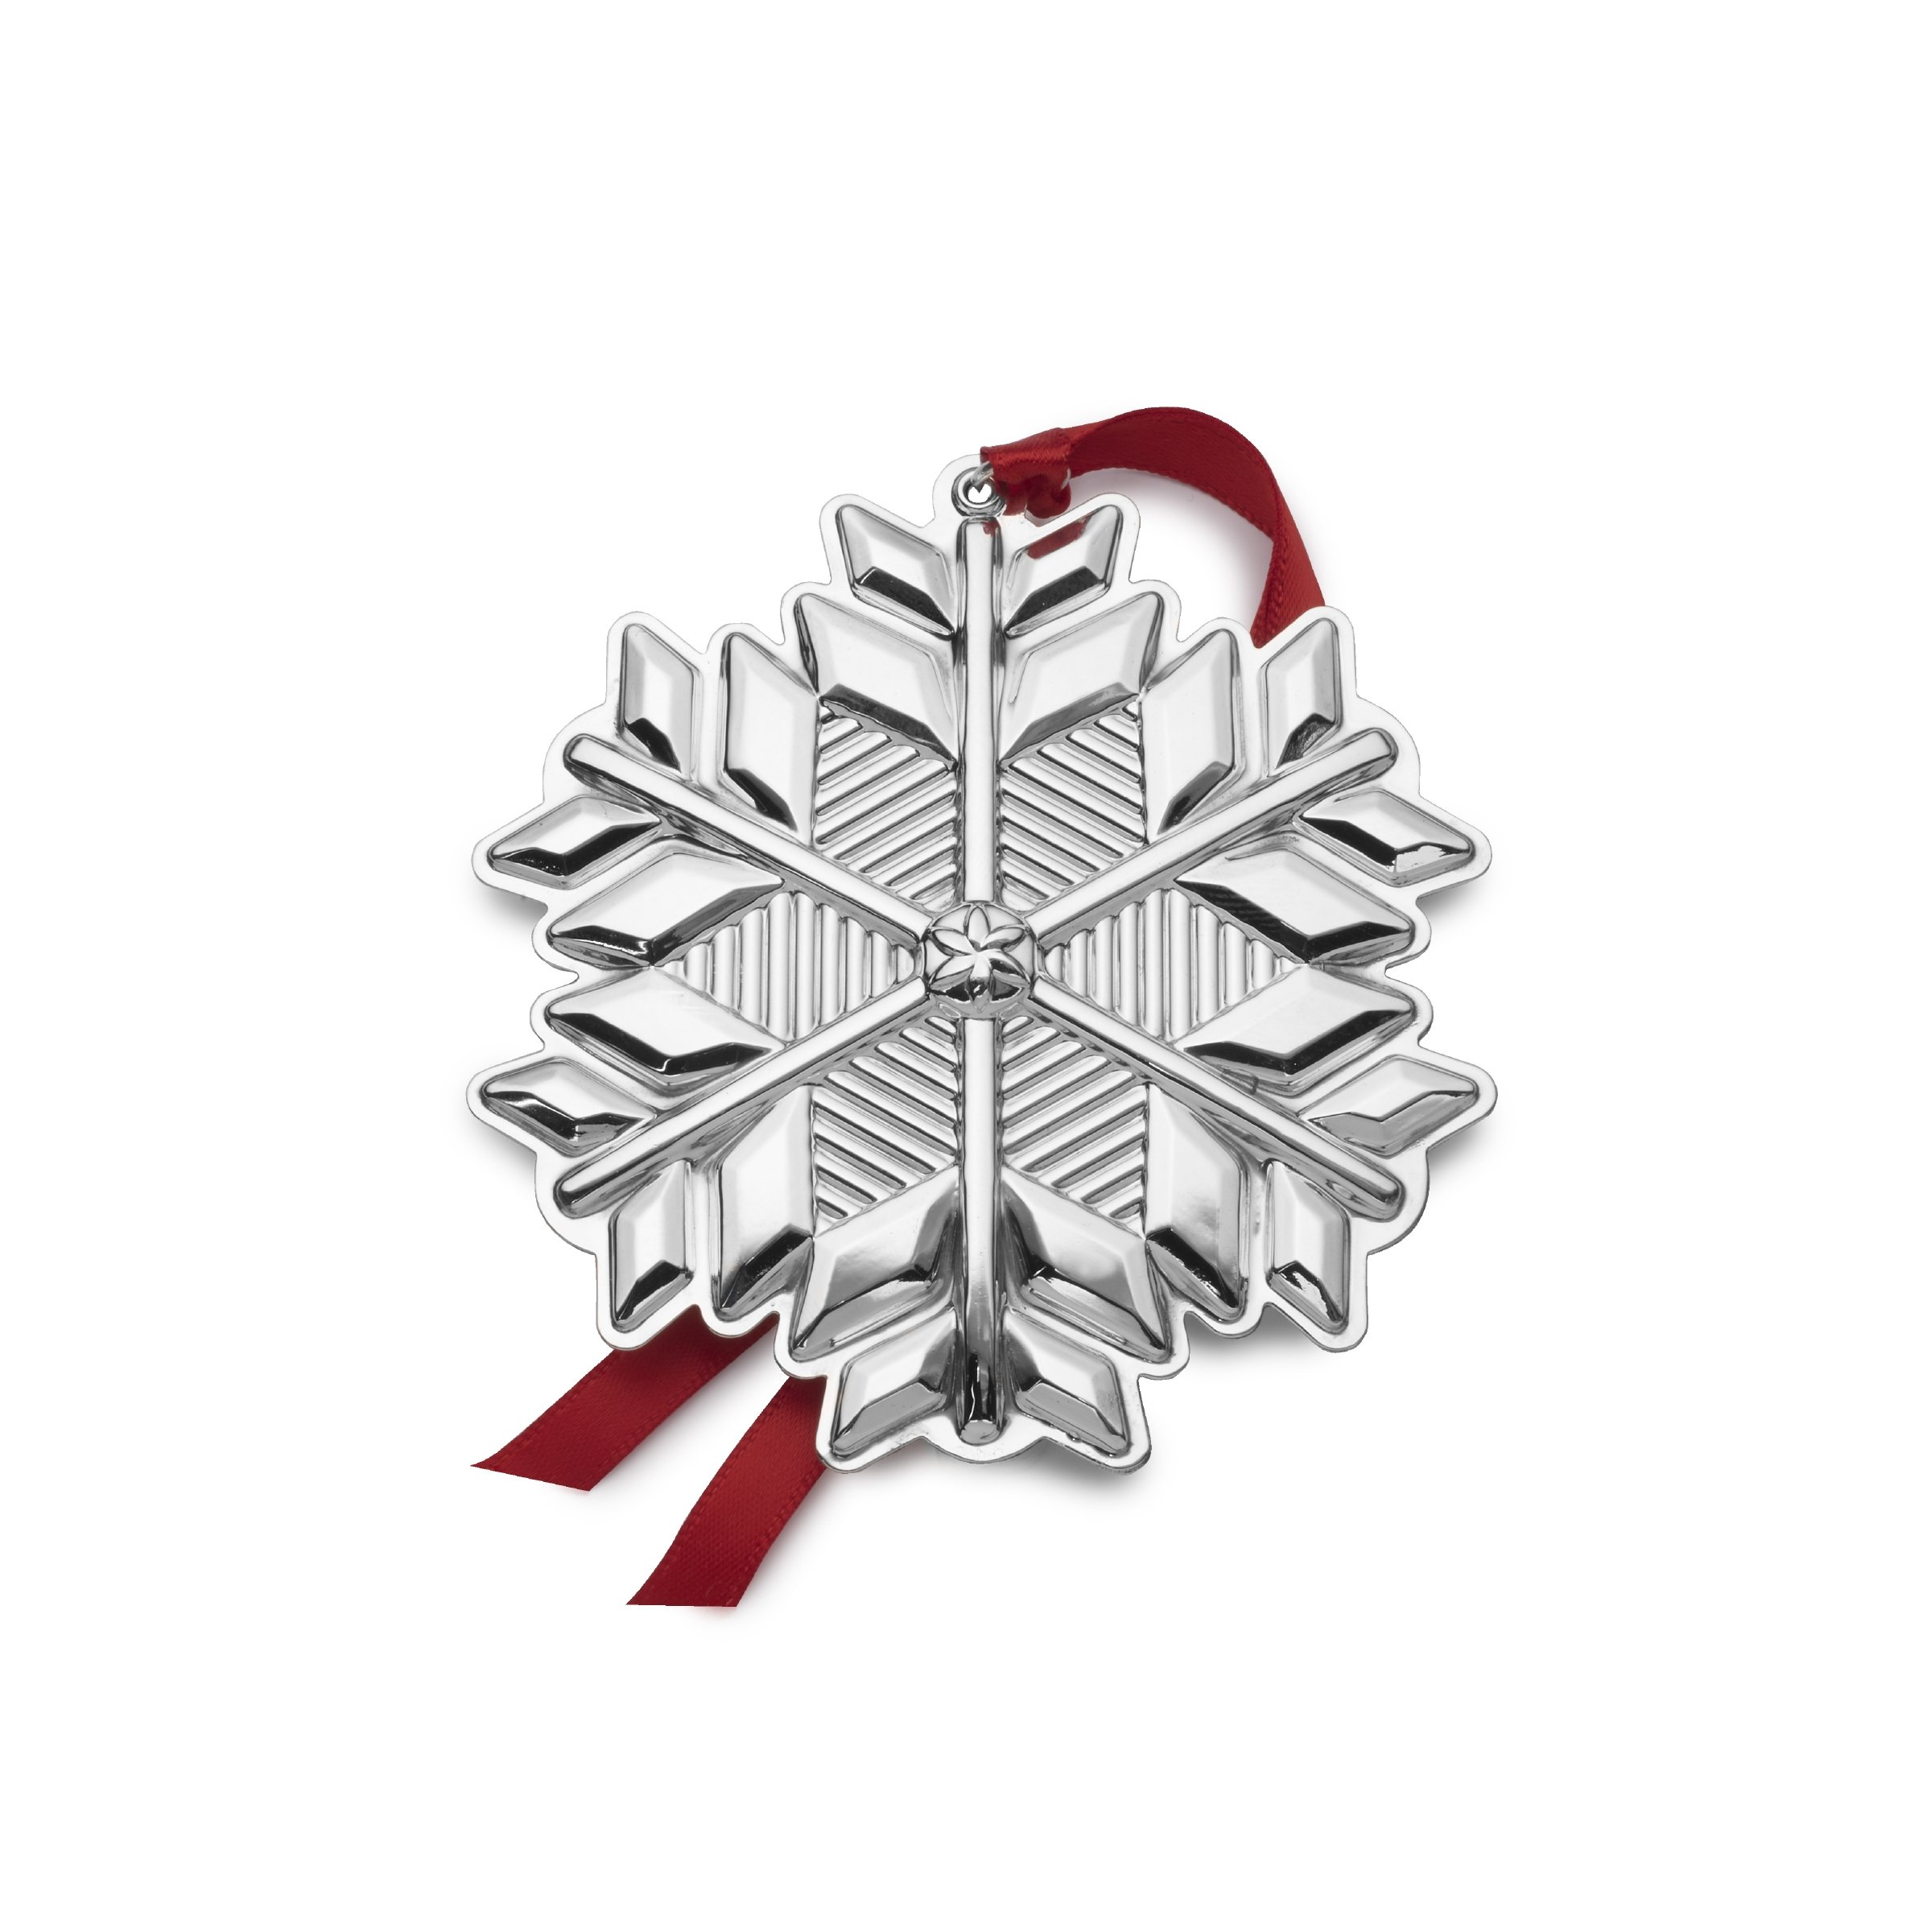 Gorham 2017 Sterling Silver Snowflake Ornament, 48th Edition by Gorham